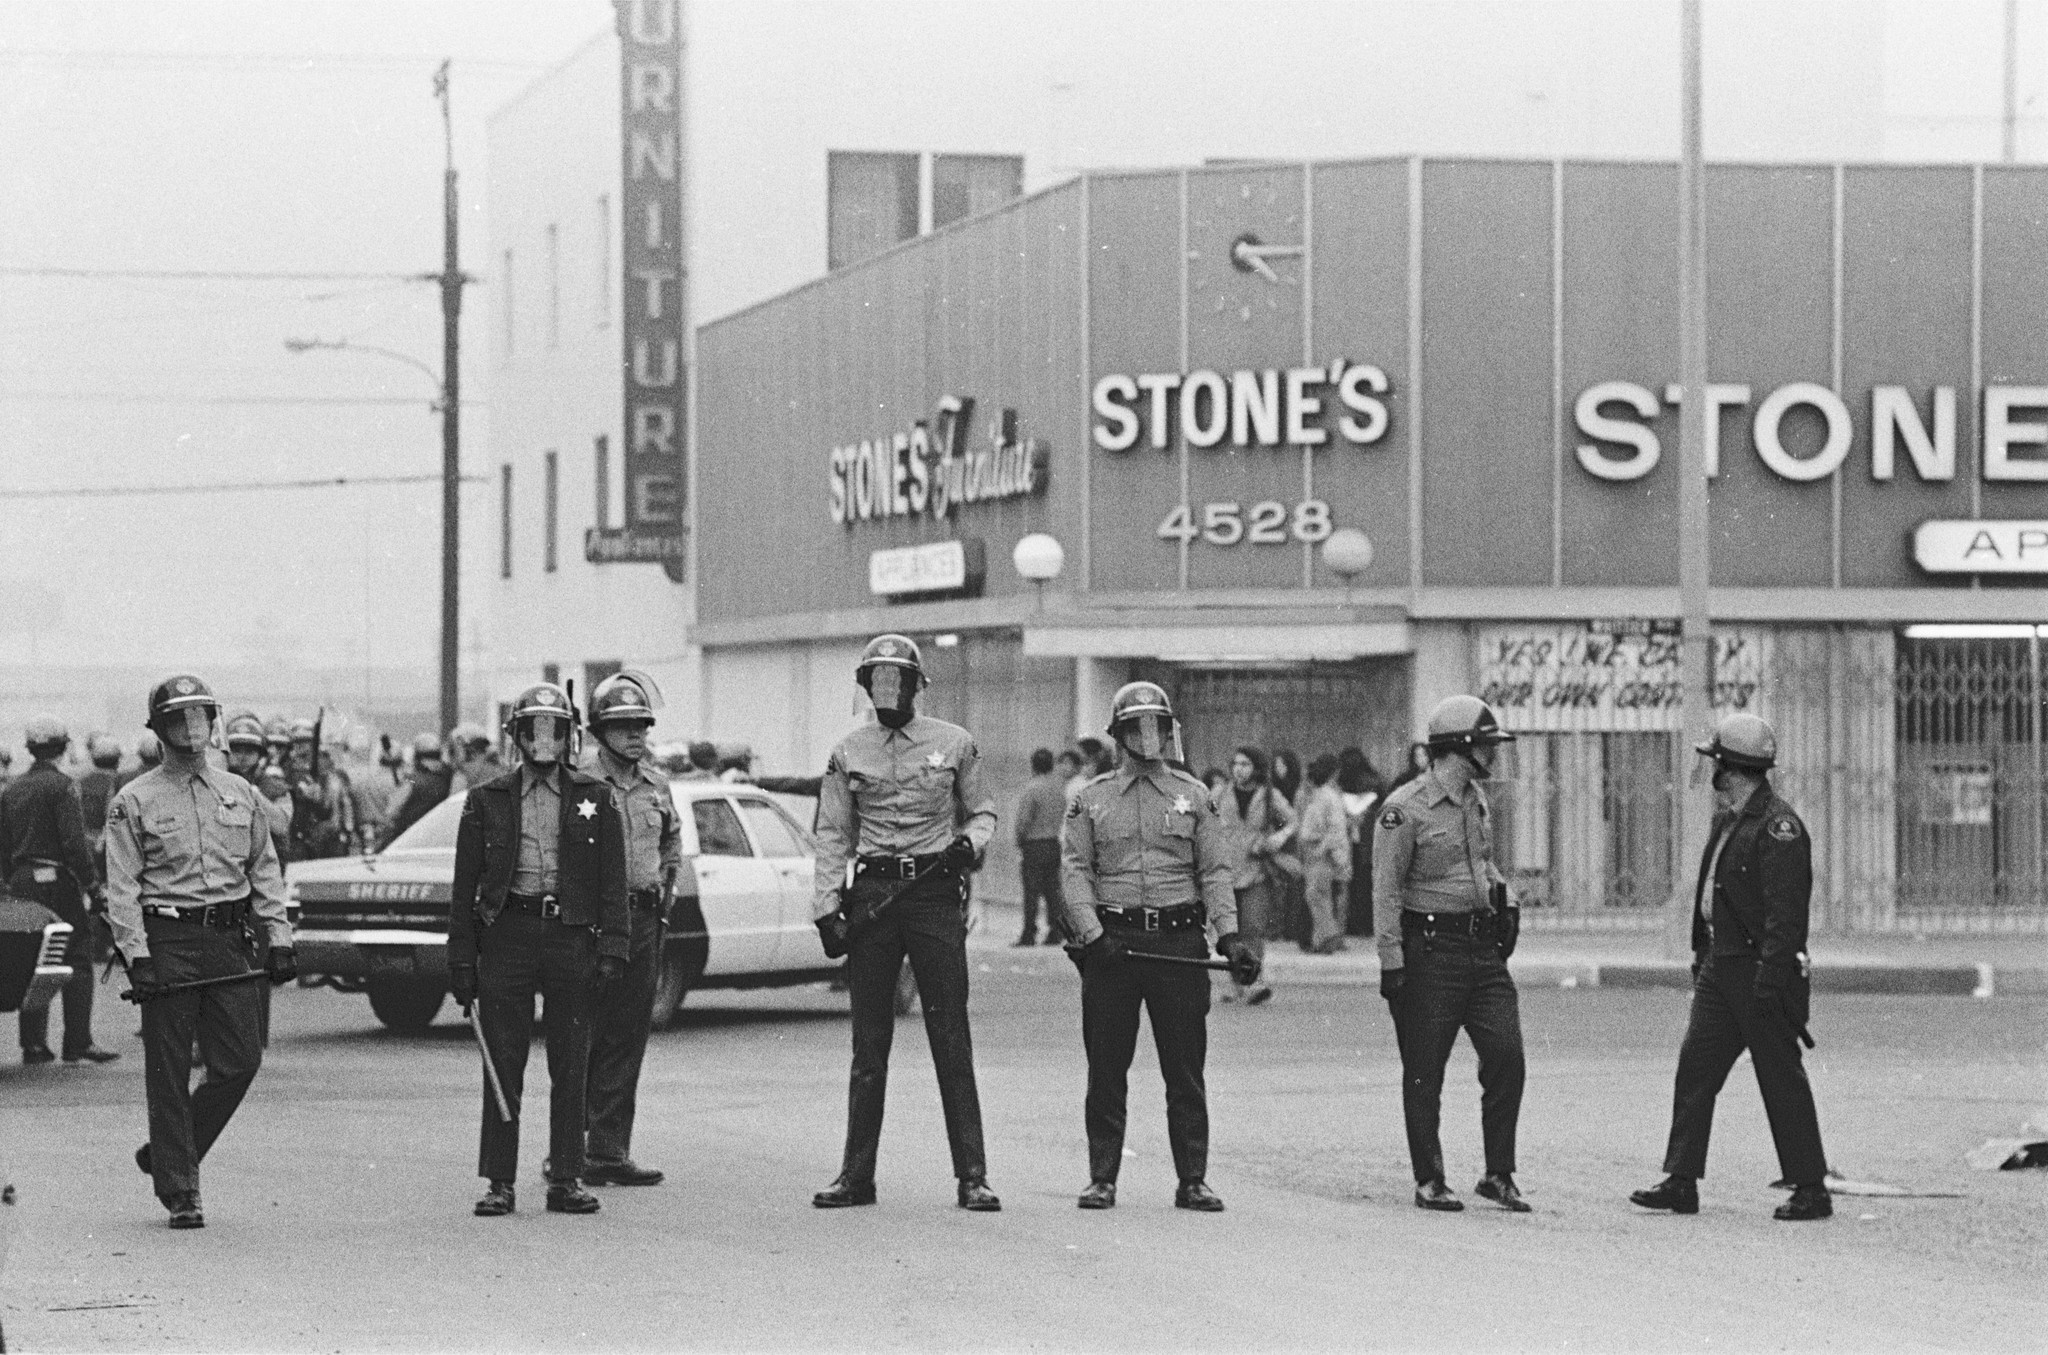 """L.A. County Sheriff's deputies assemble at the Marcha por la Justicia (March for Justice) in 1971, from """"La Raza"""" at the Autry Museum."""